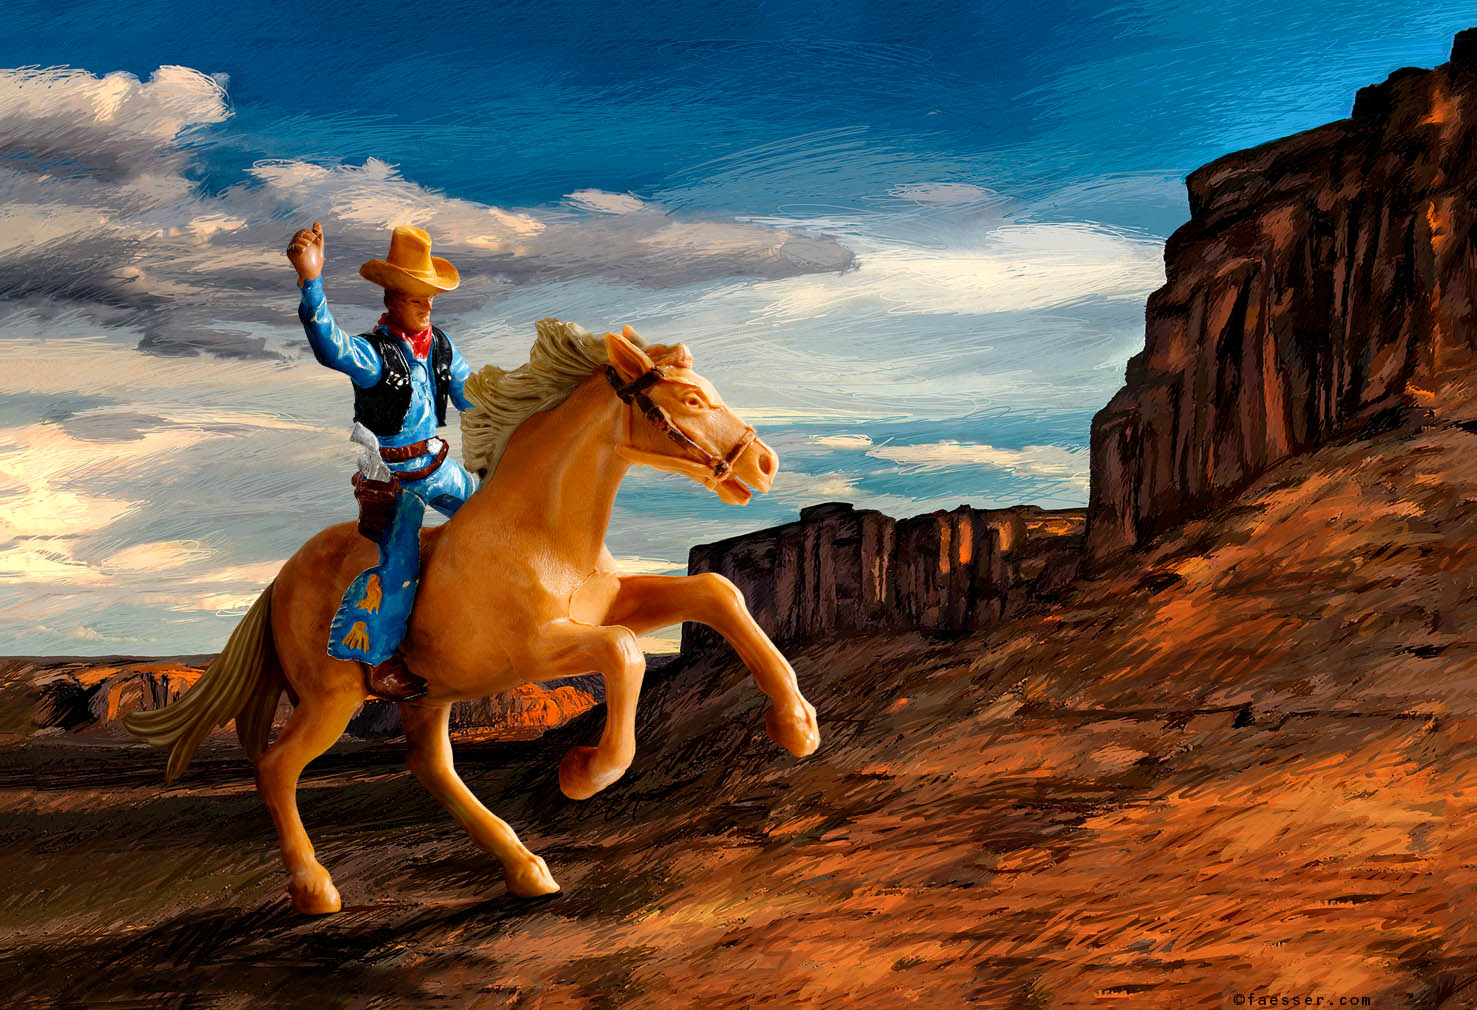 Plastic toy rider with horse, as analogy to the Marlboro ad in the Monument Valley; artist Roland Faesser, sculptor and painter 2013